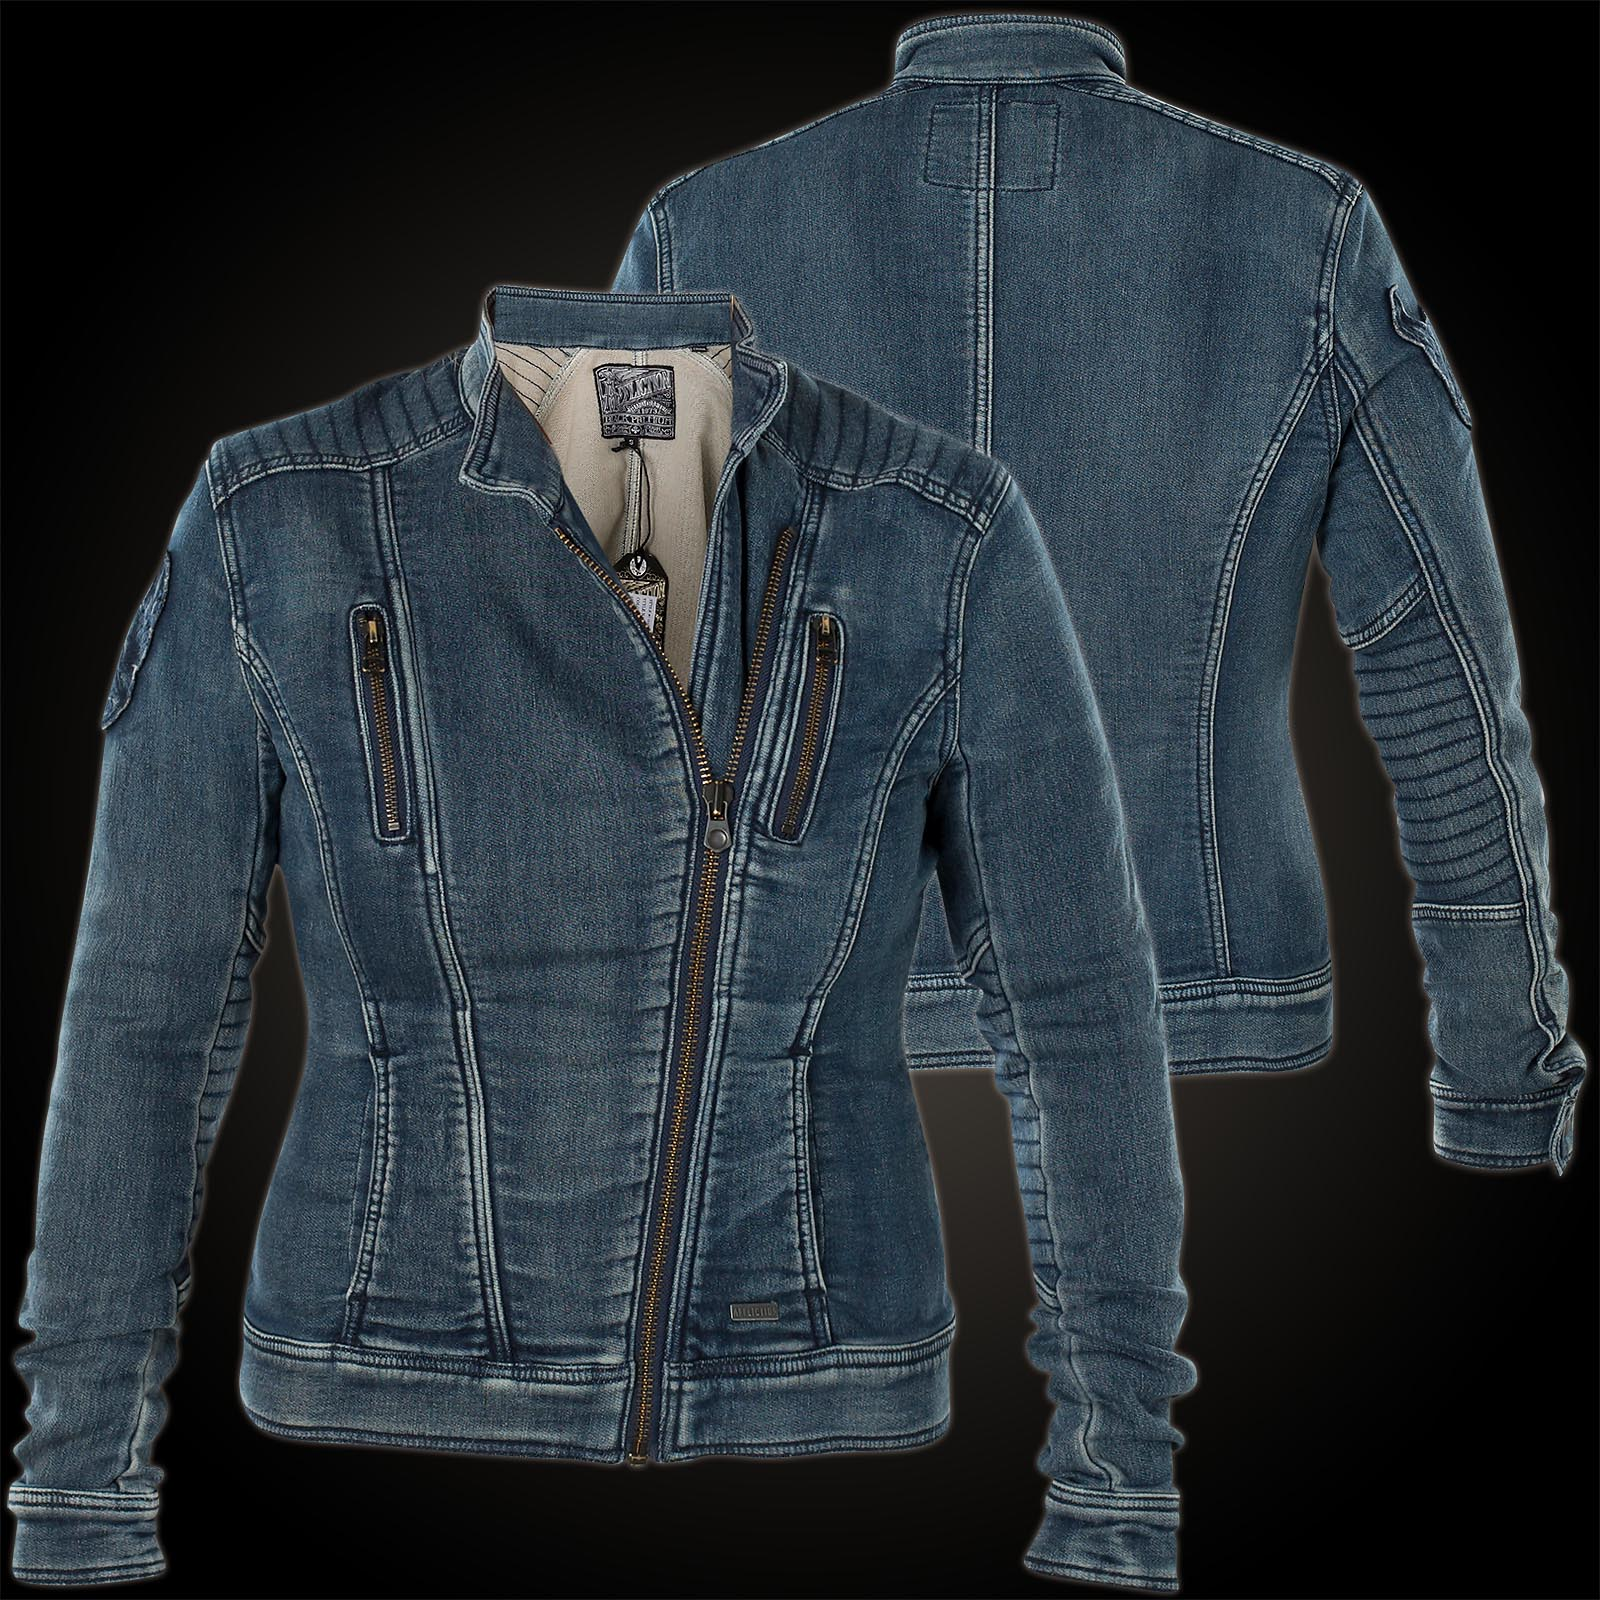 promo code 14a64 b740c Affliction Damen Jeansjacke Coastal Retreat Blau